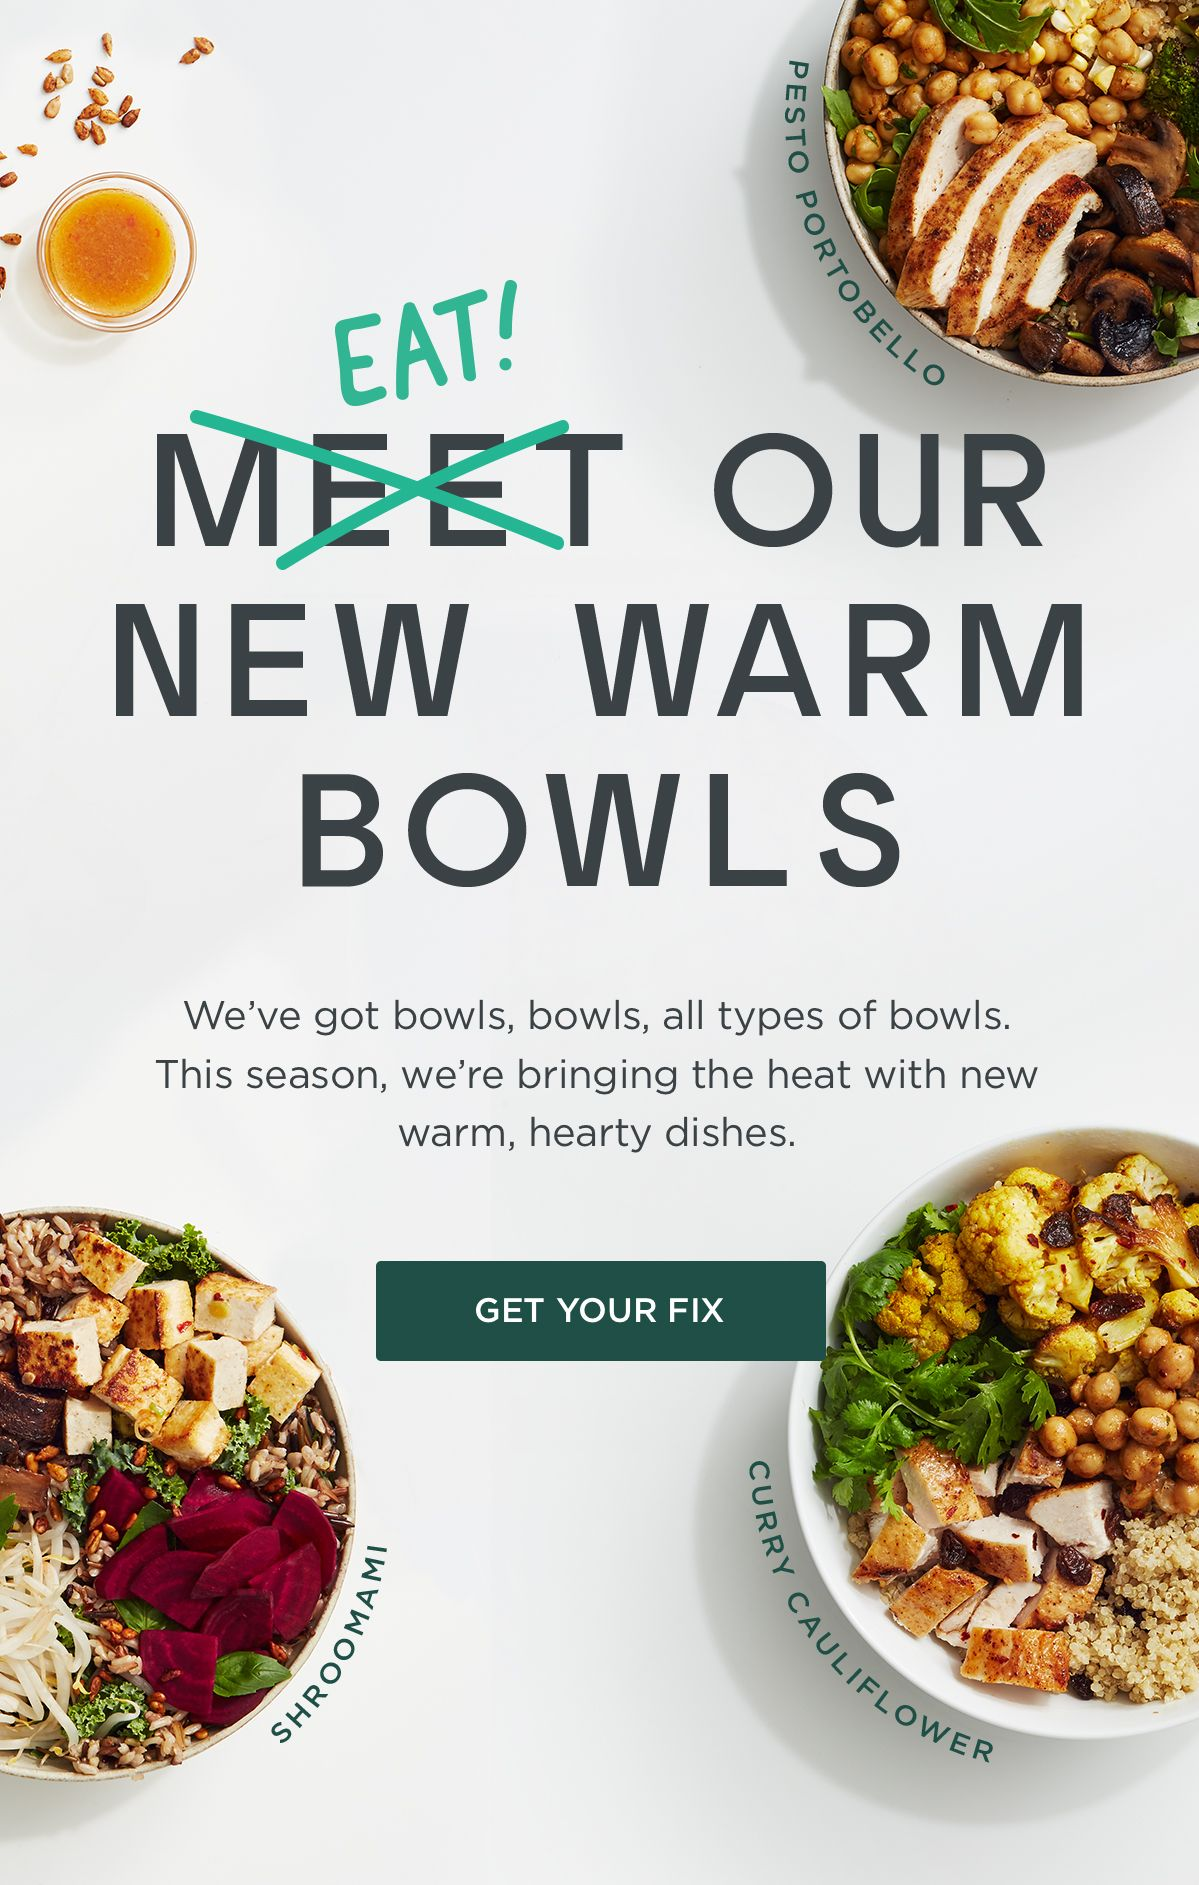 Email design from Sweet green Cauliflower curry, New